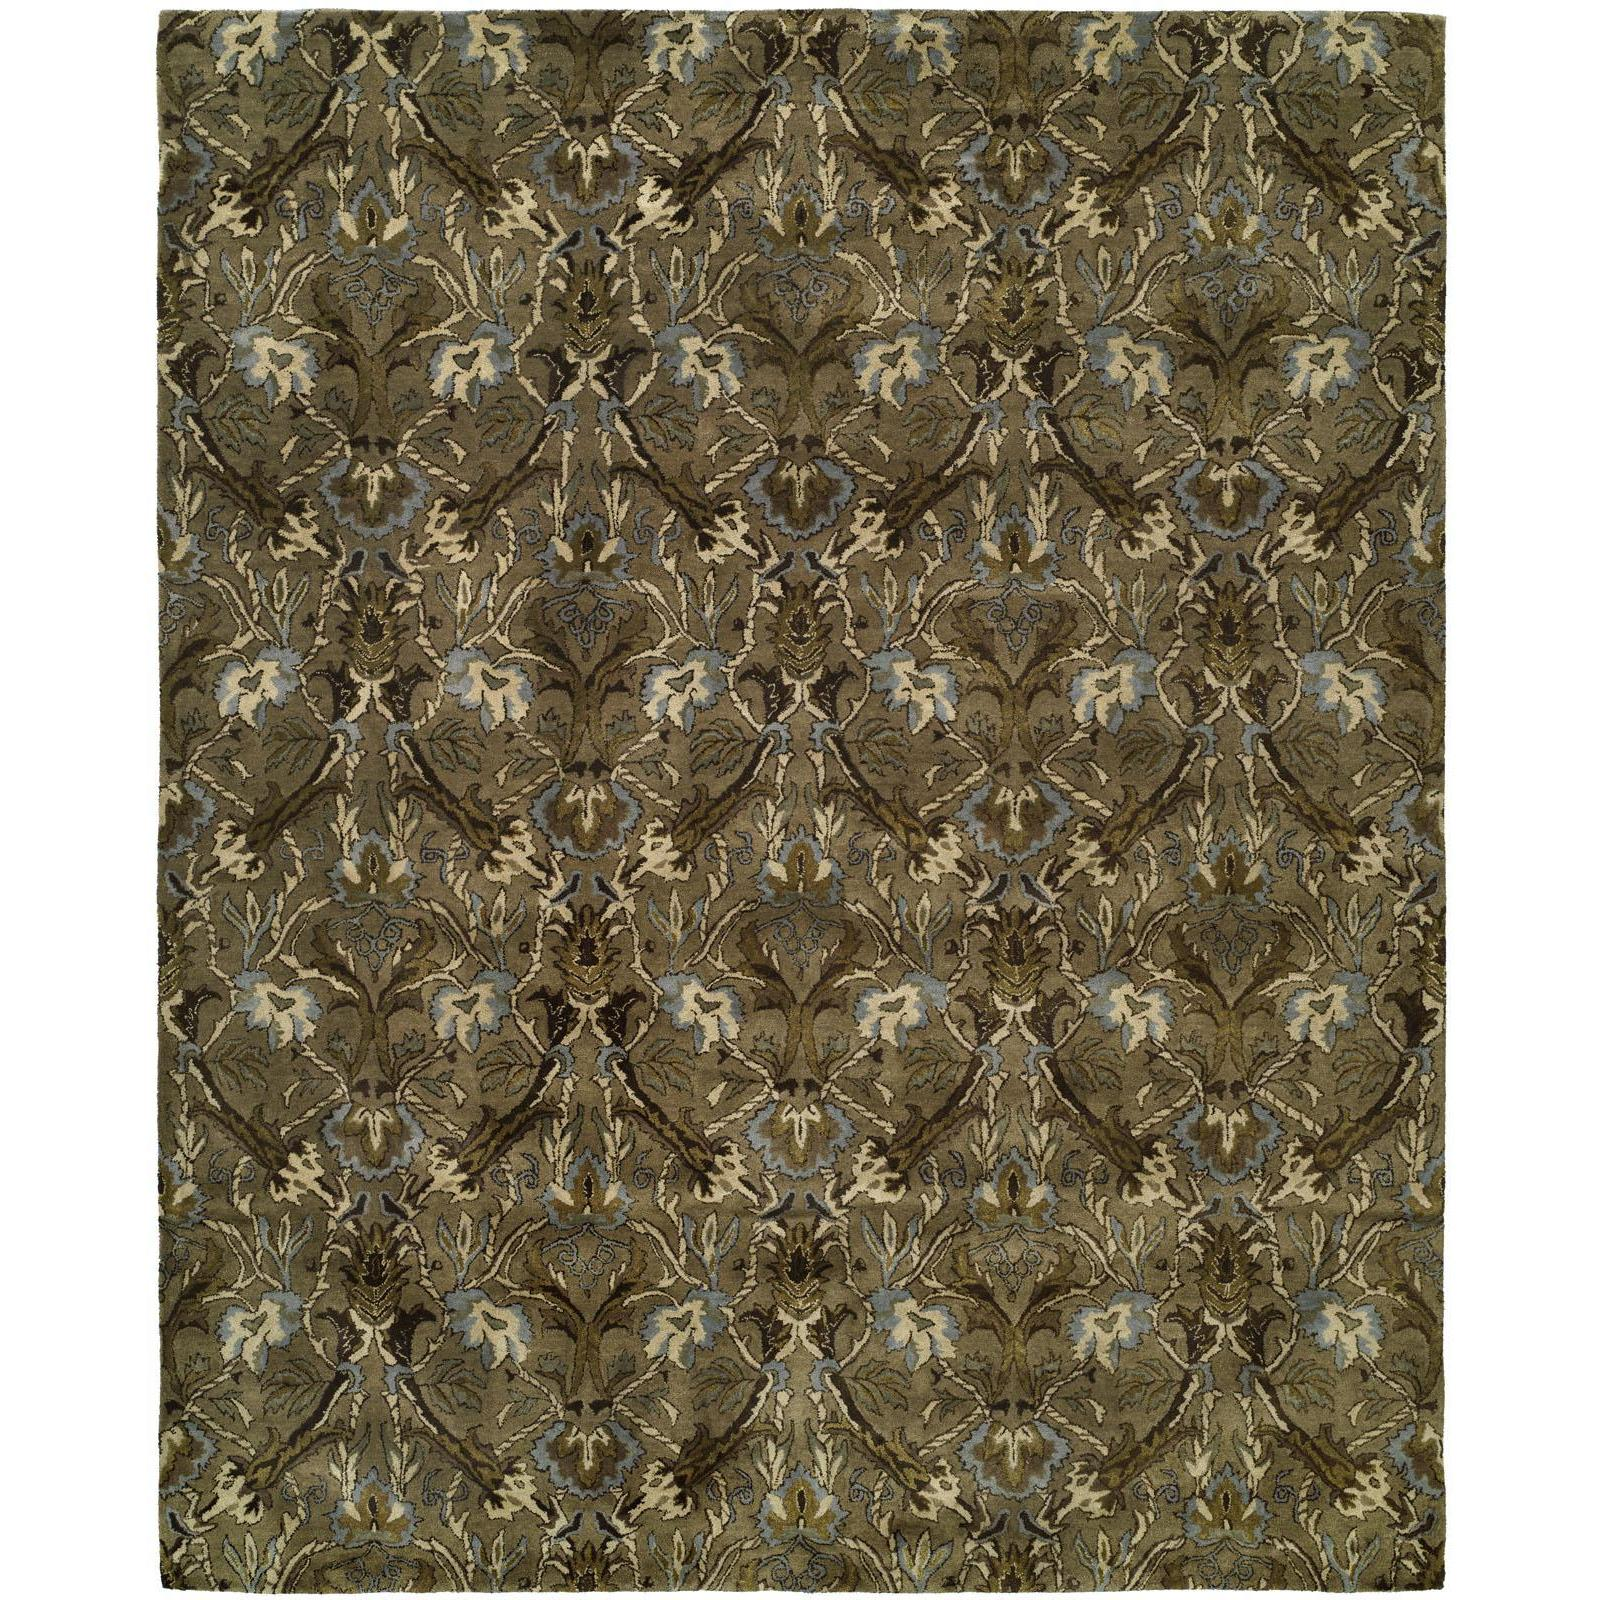 Newpot Mansions Latte Wool Hand-tufted Area Rug (8' x 10'...